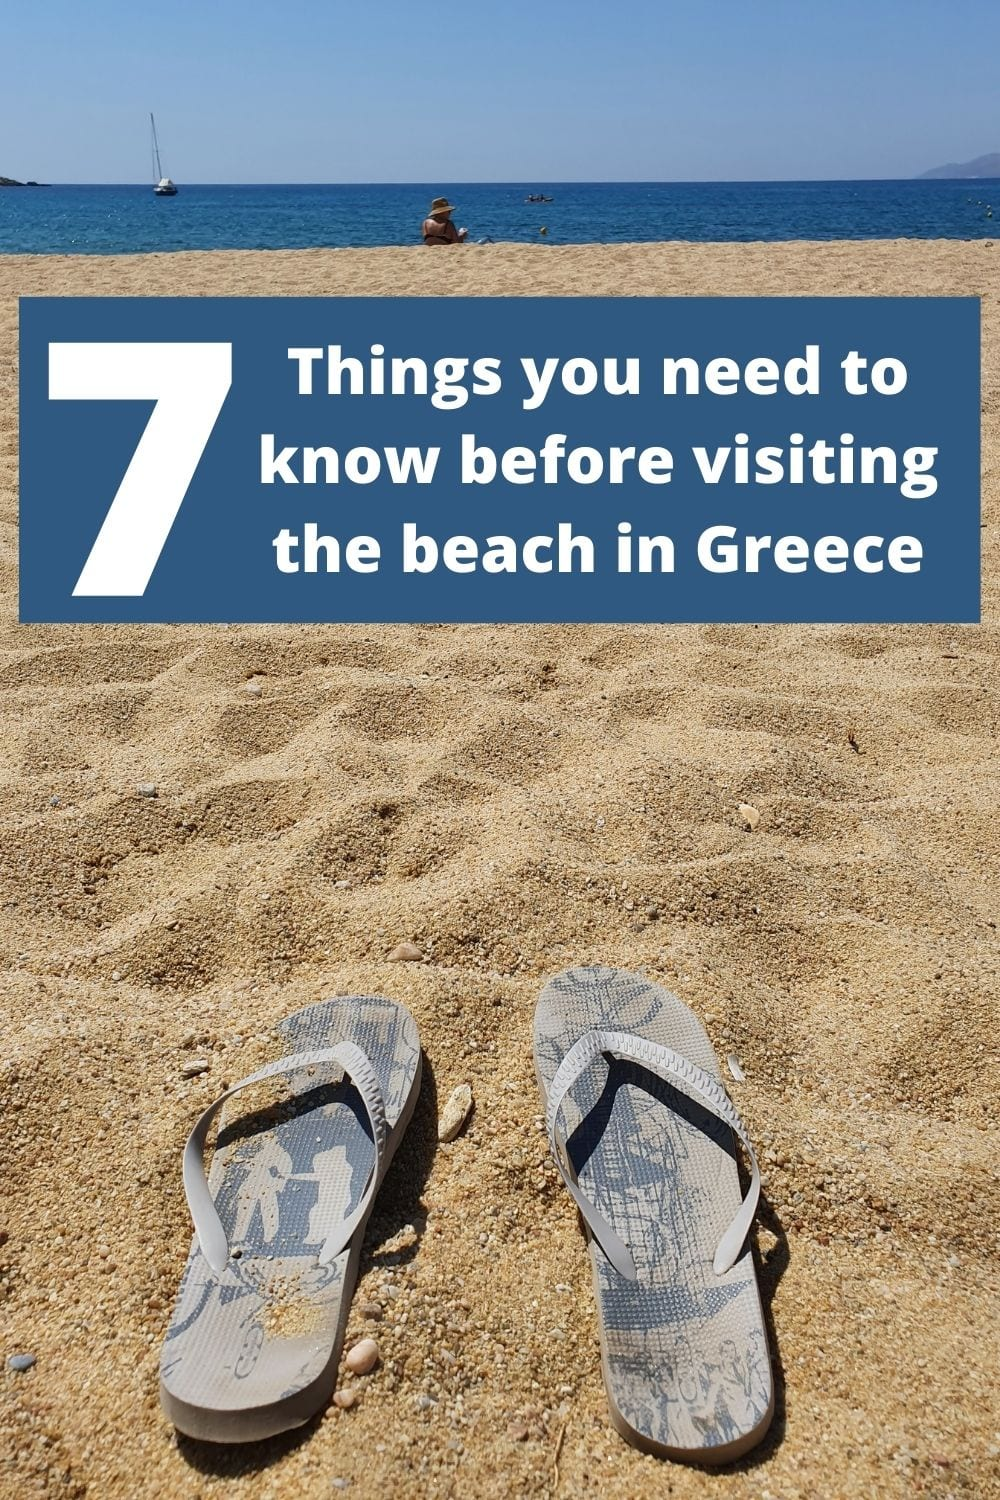 Things you need to know before visiting the beach in greece